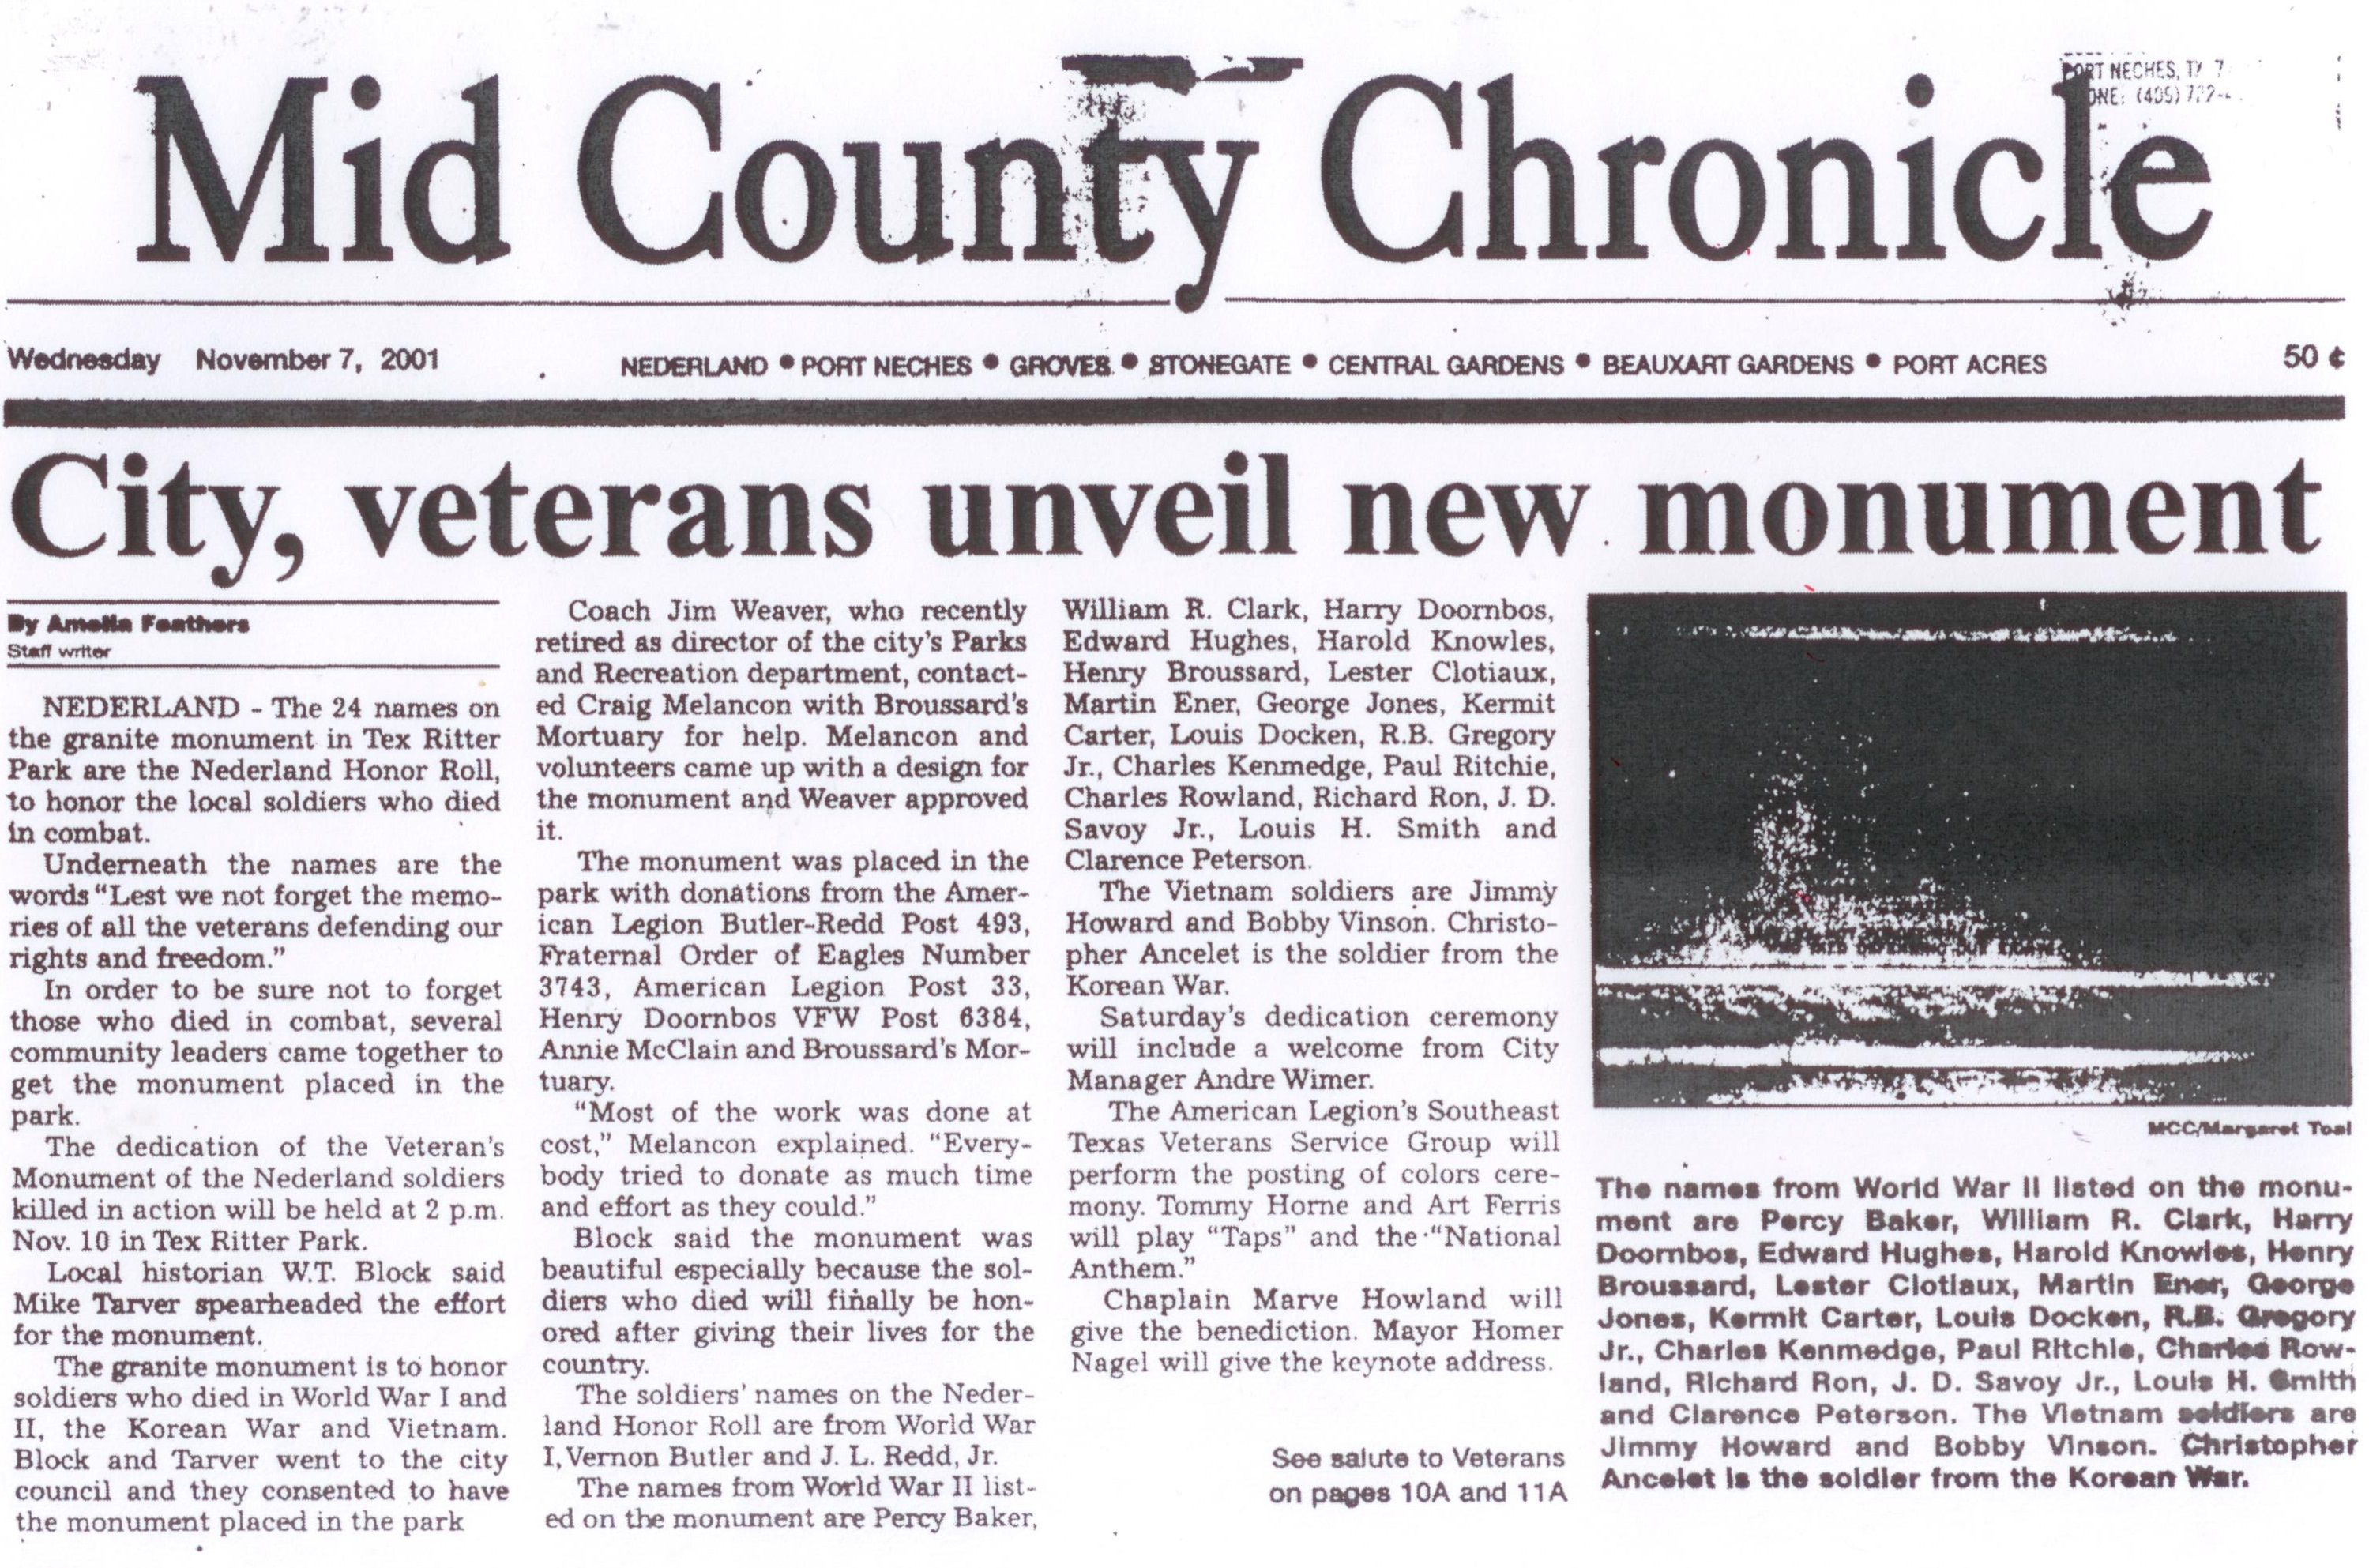 Veterans Memorial 2001 article